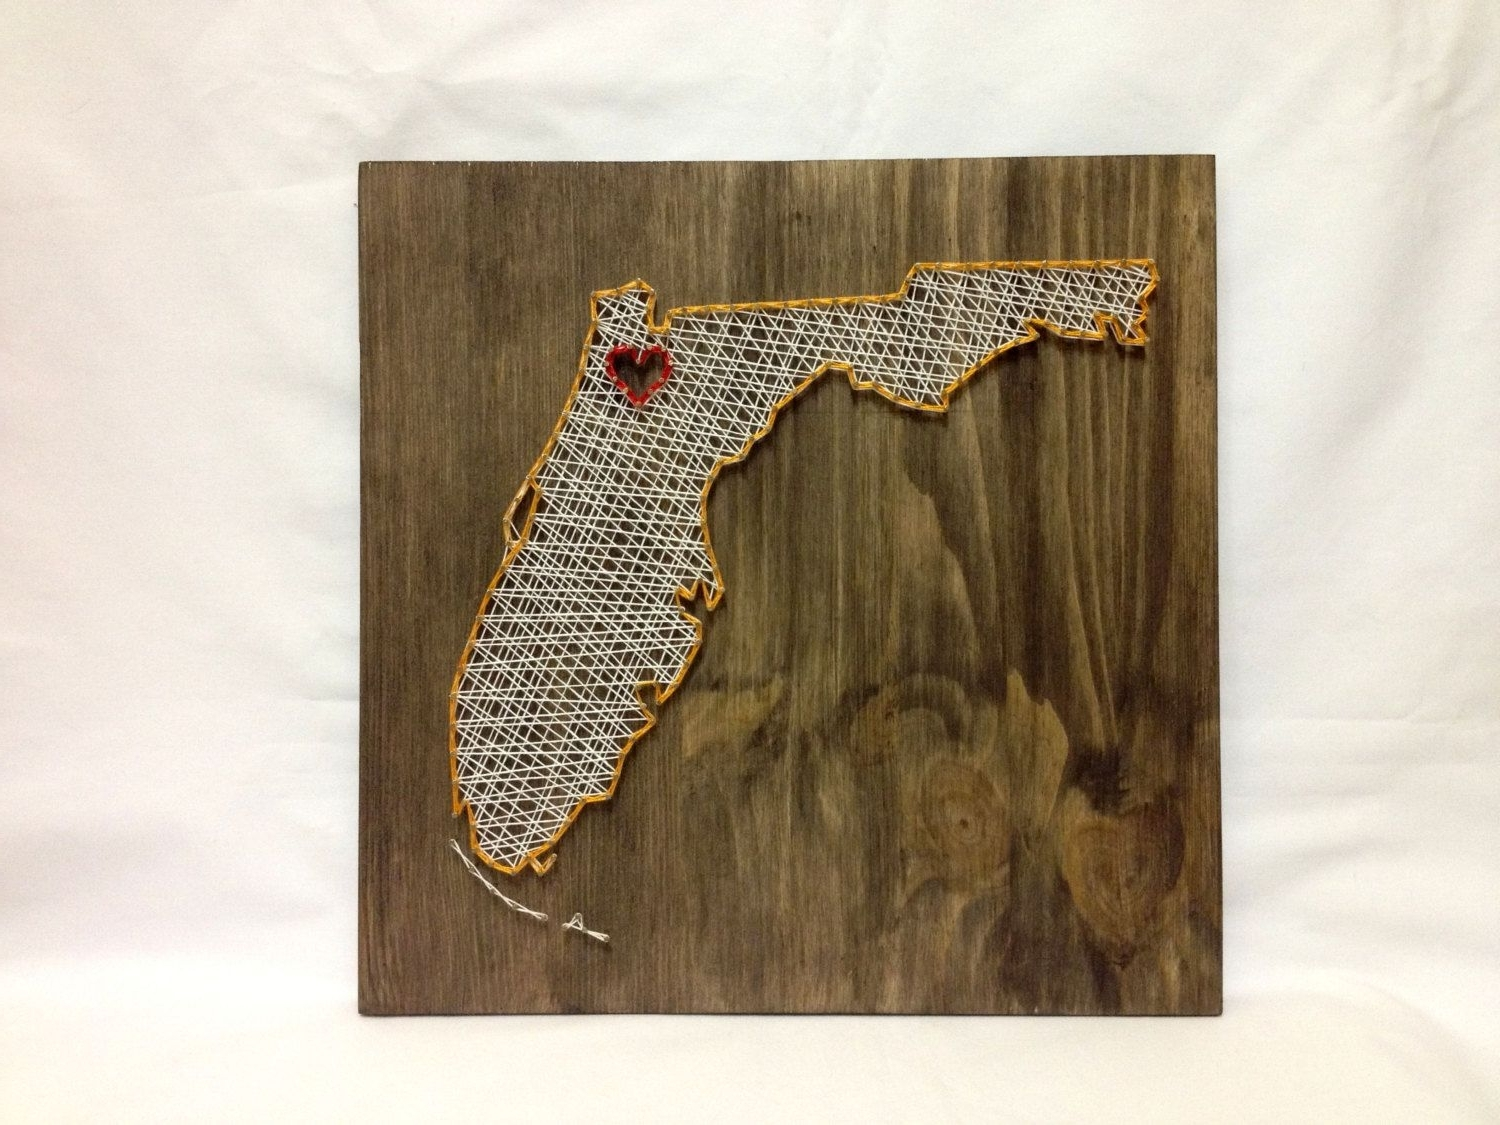 Most Current Florida State String Art Florida Wall Art Home Decor От Oneroots Regarding Florida Wall Art (View 16 of 20)